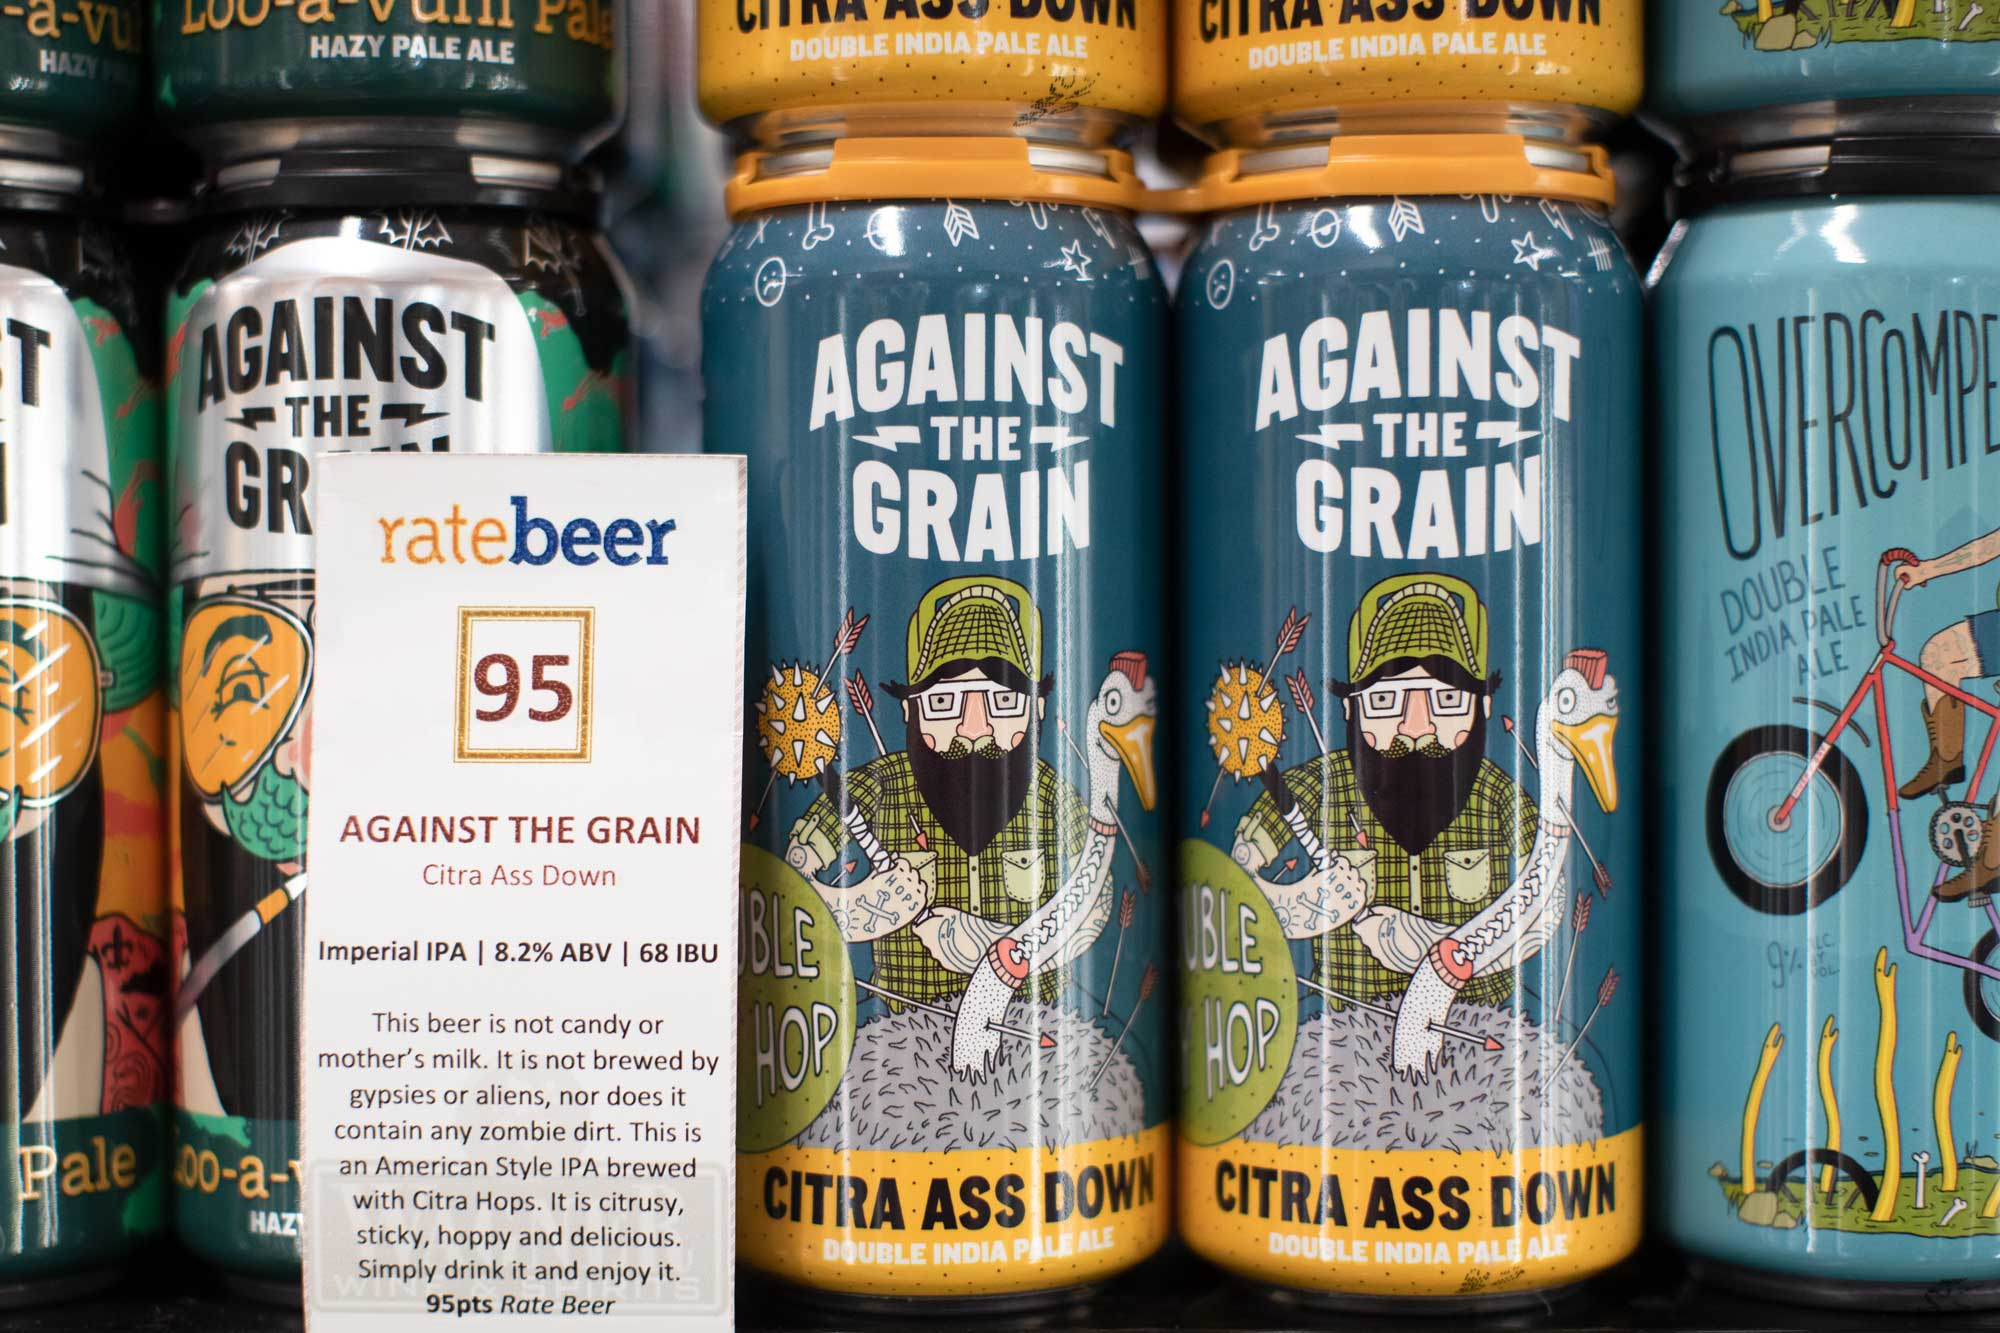 shelf talker with cans of beer